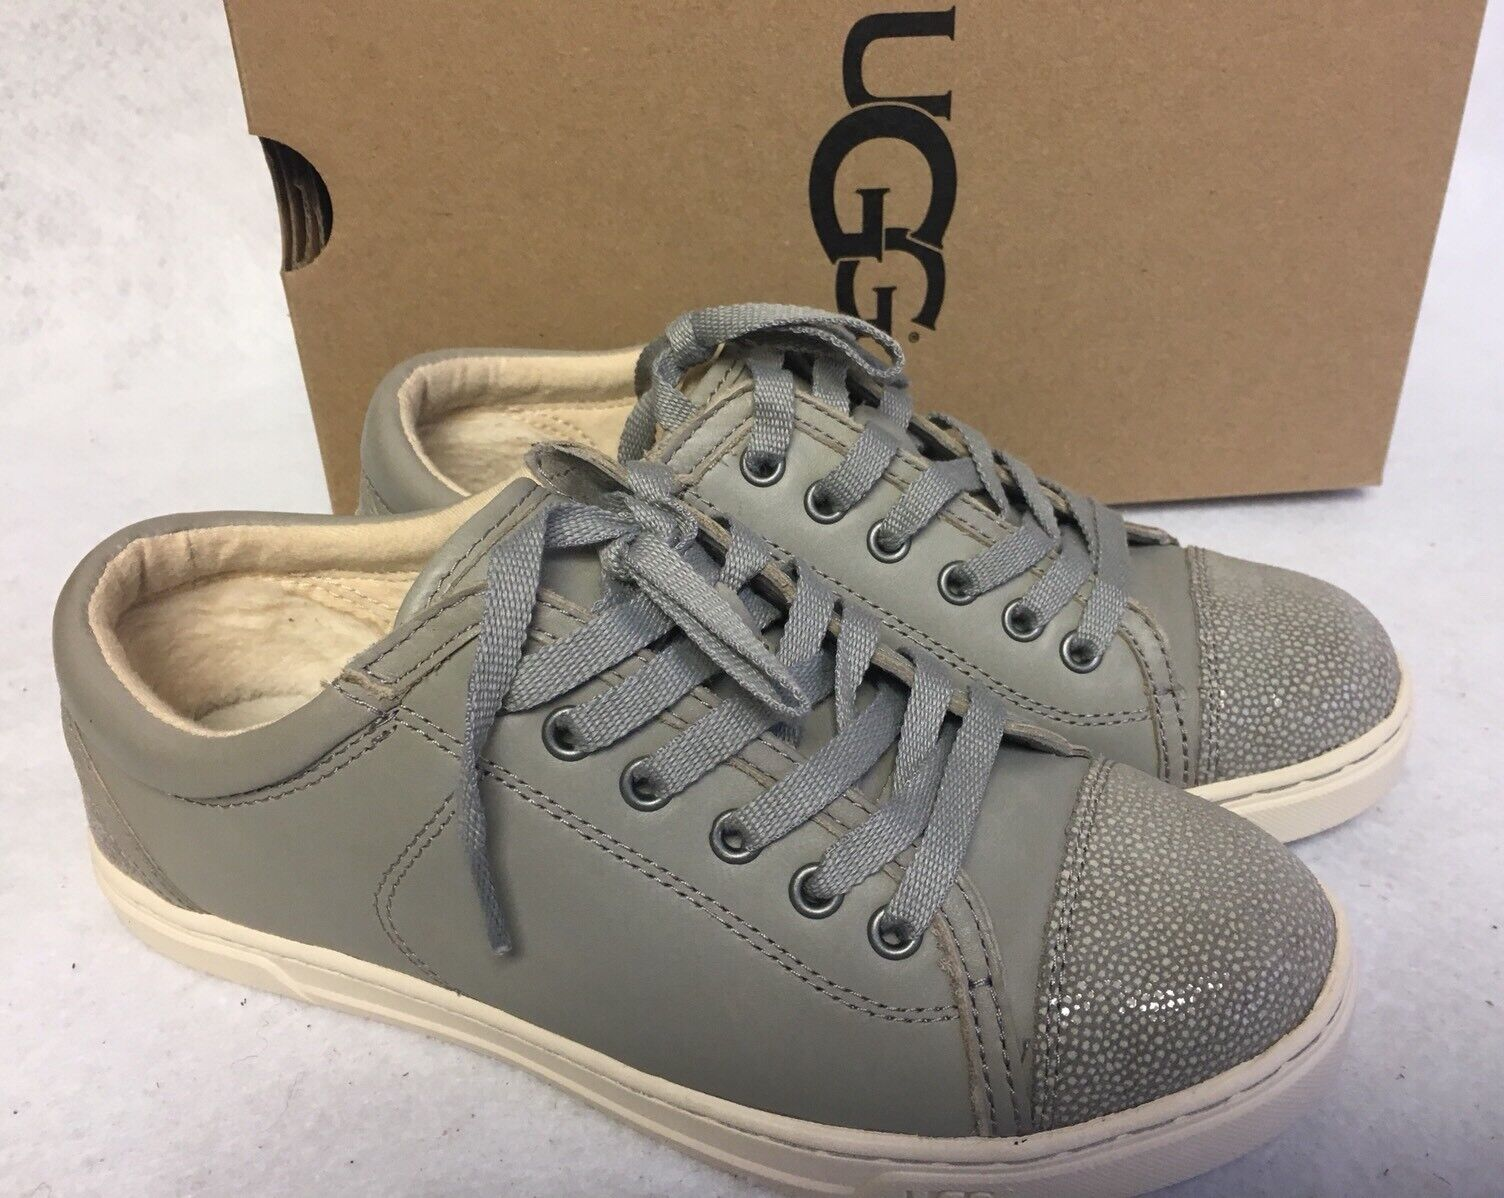 UGG Australia TAYA Oyster CUIR FASHION SNEAKERS WOMENS 1006828 Chaussures à lacets